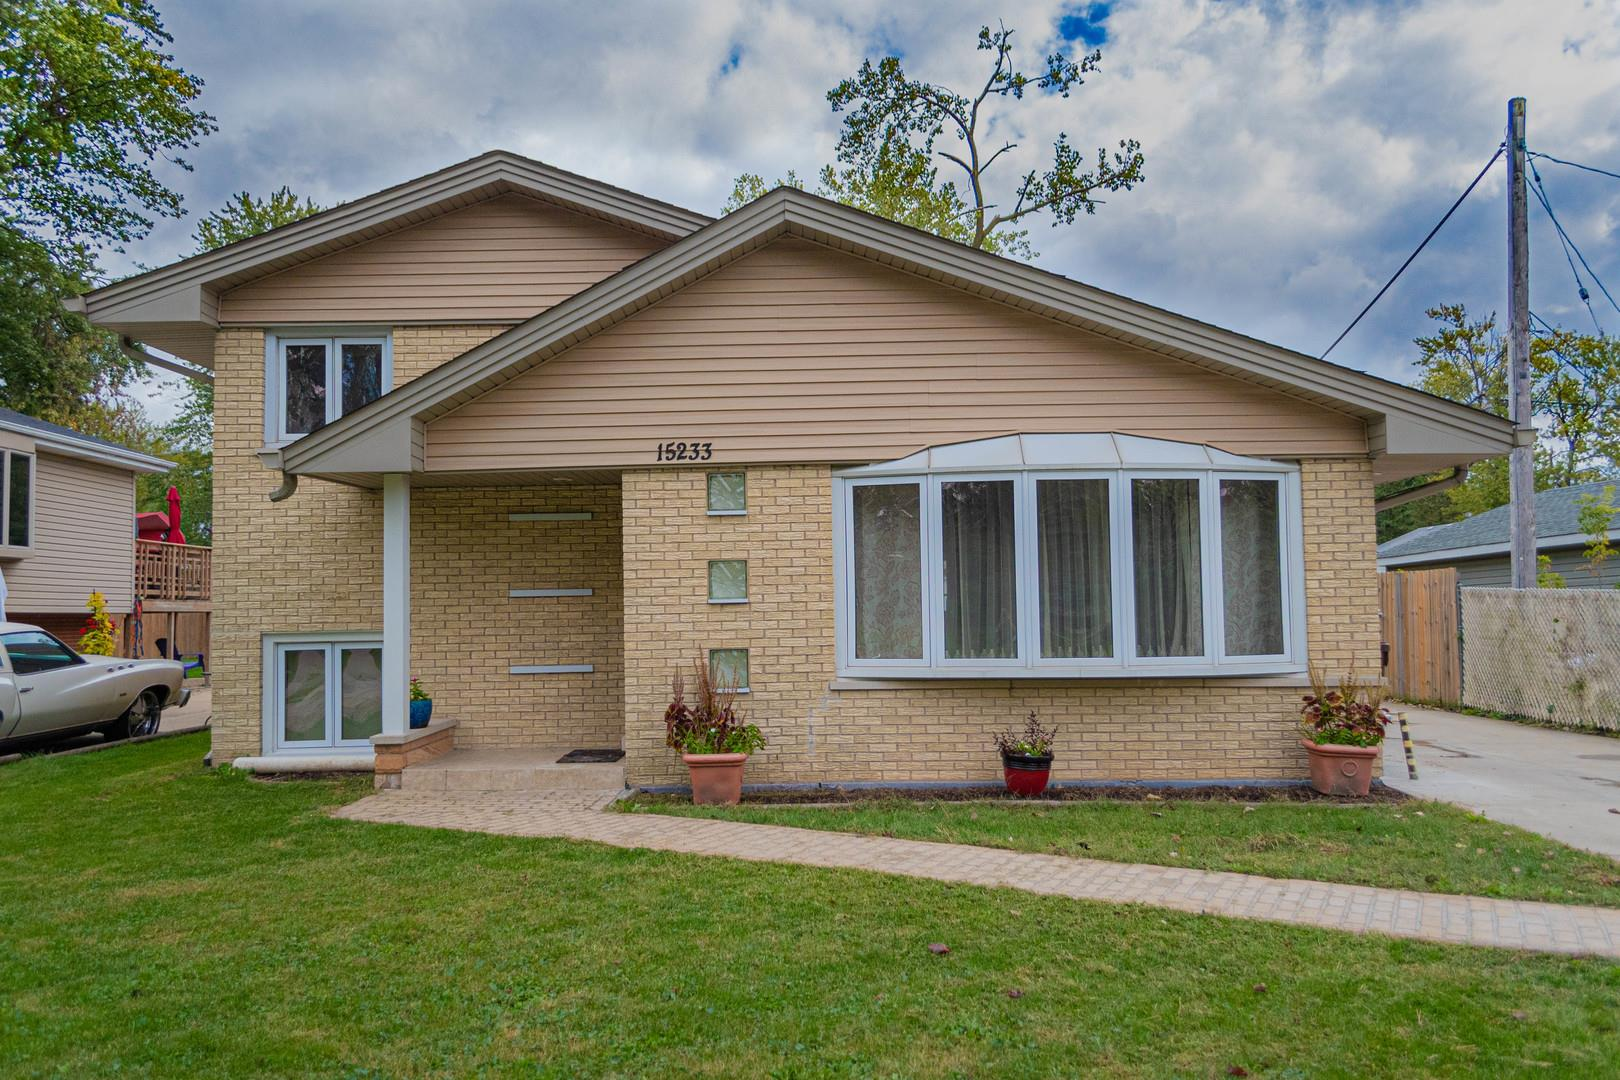 15233 Lavergne Avenue, Oak Forest, IL 60452 - #: 10971562